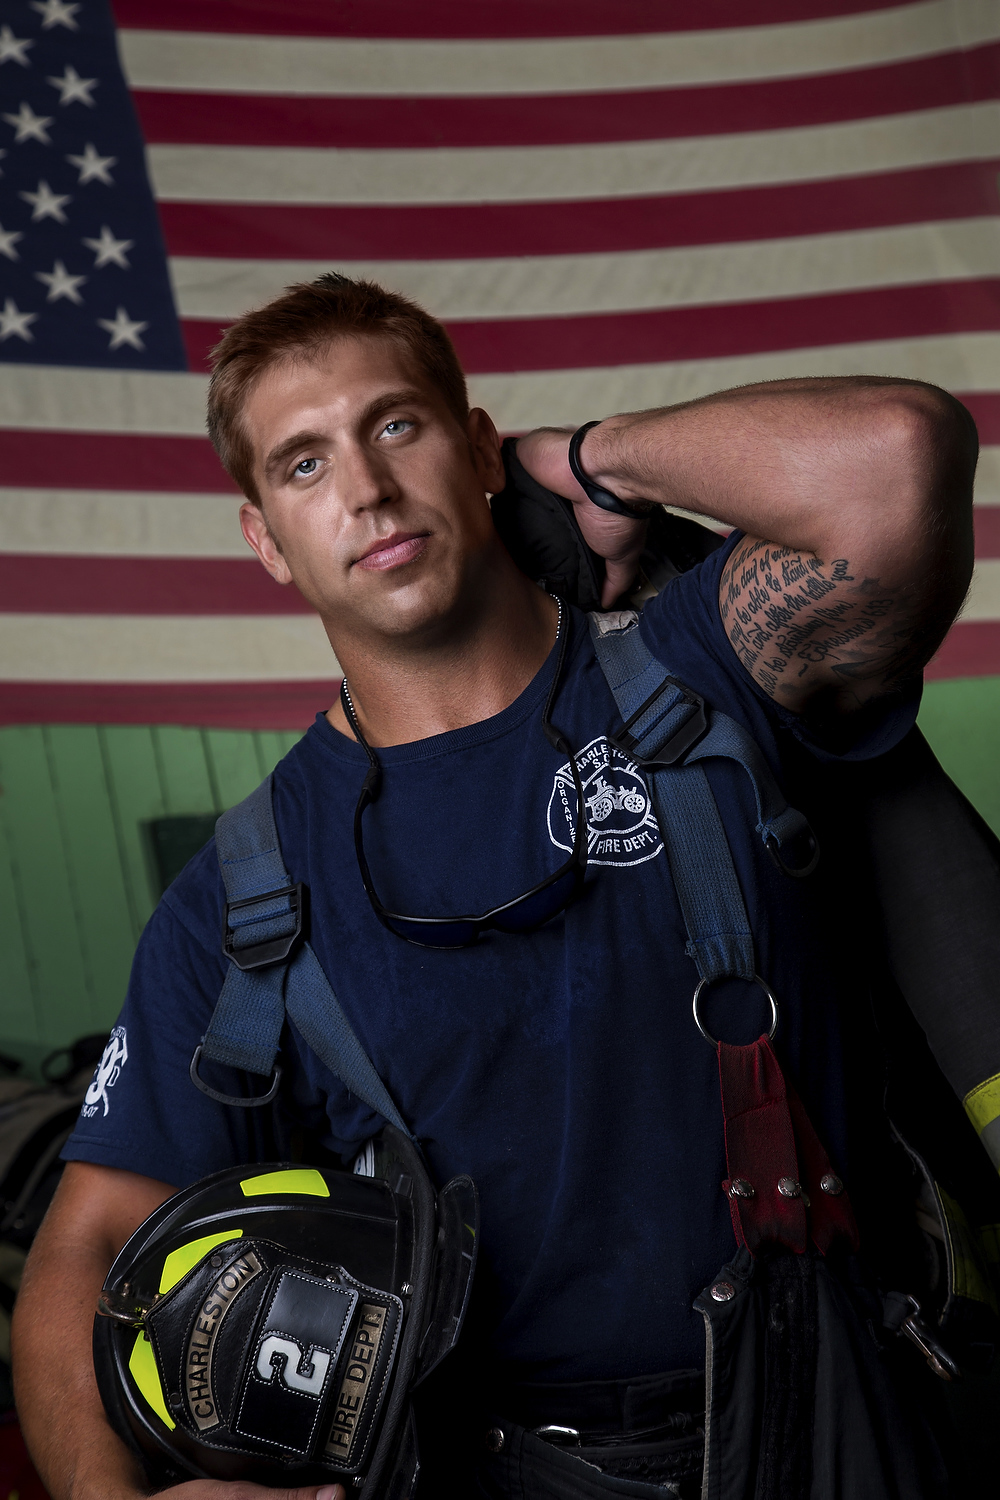 A fireman with the Charleston fire department poses for a portrait.